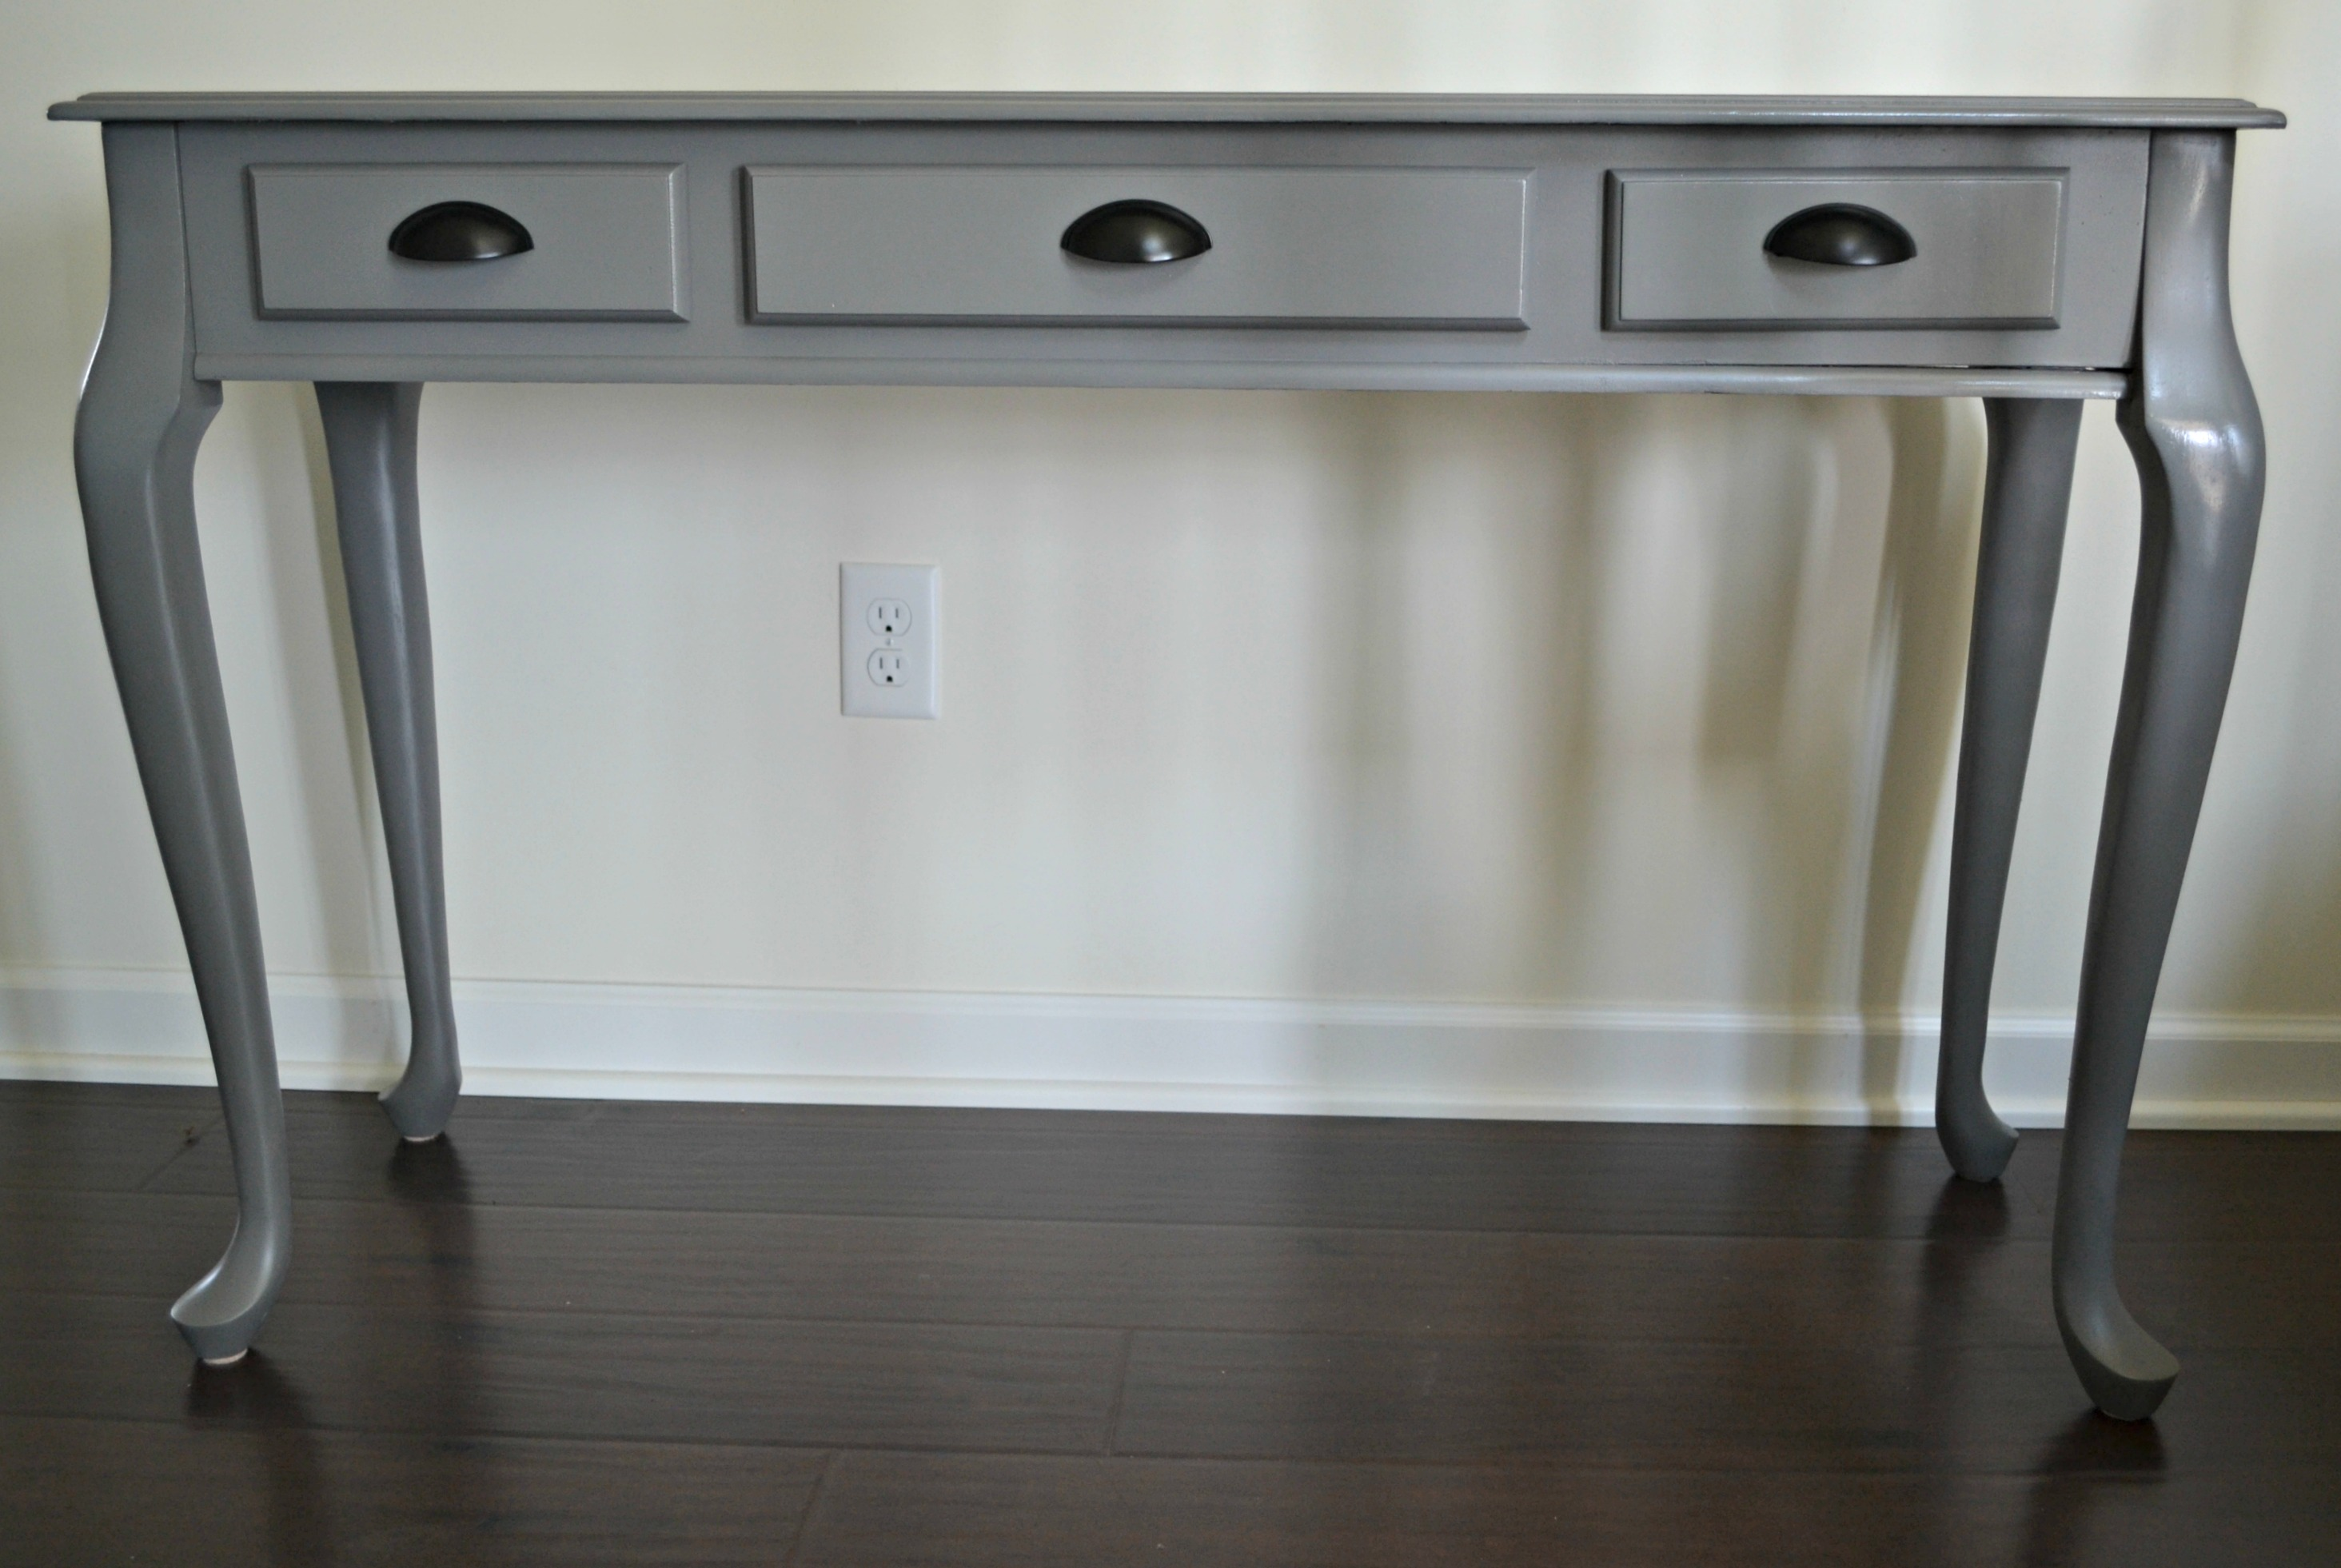 DIY Spray Painted Console Table: How To Update Furniture With Spray Paint |  This Grateful Mama